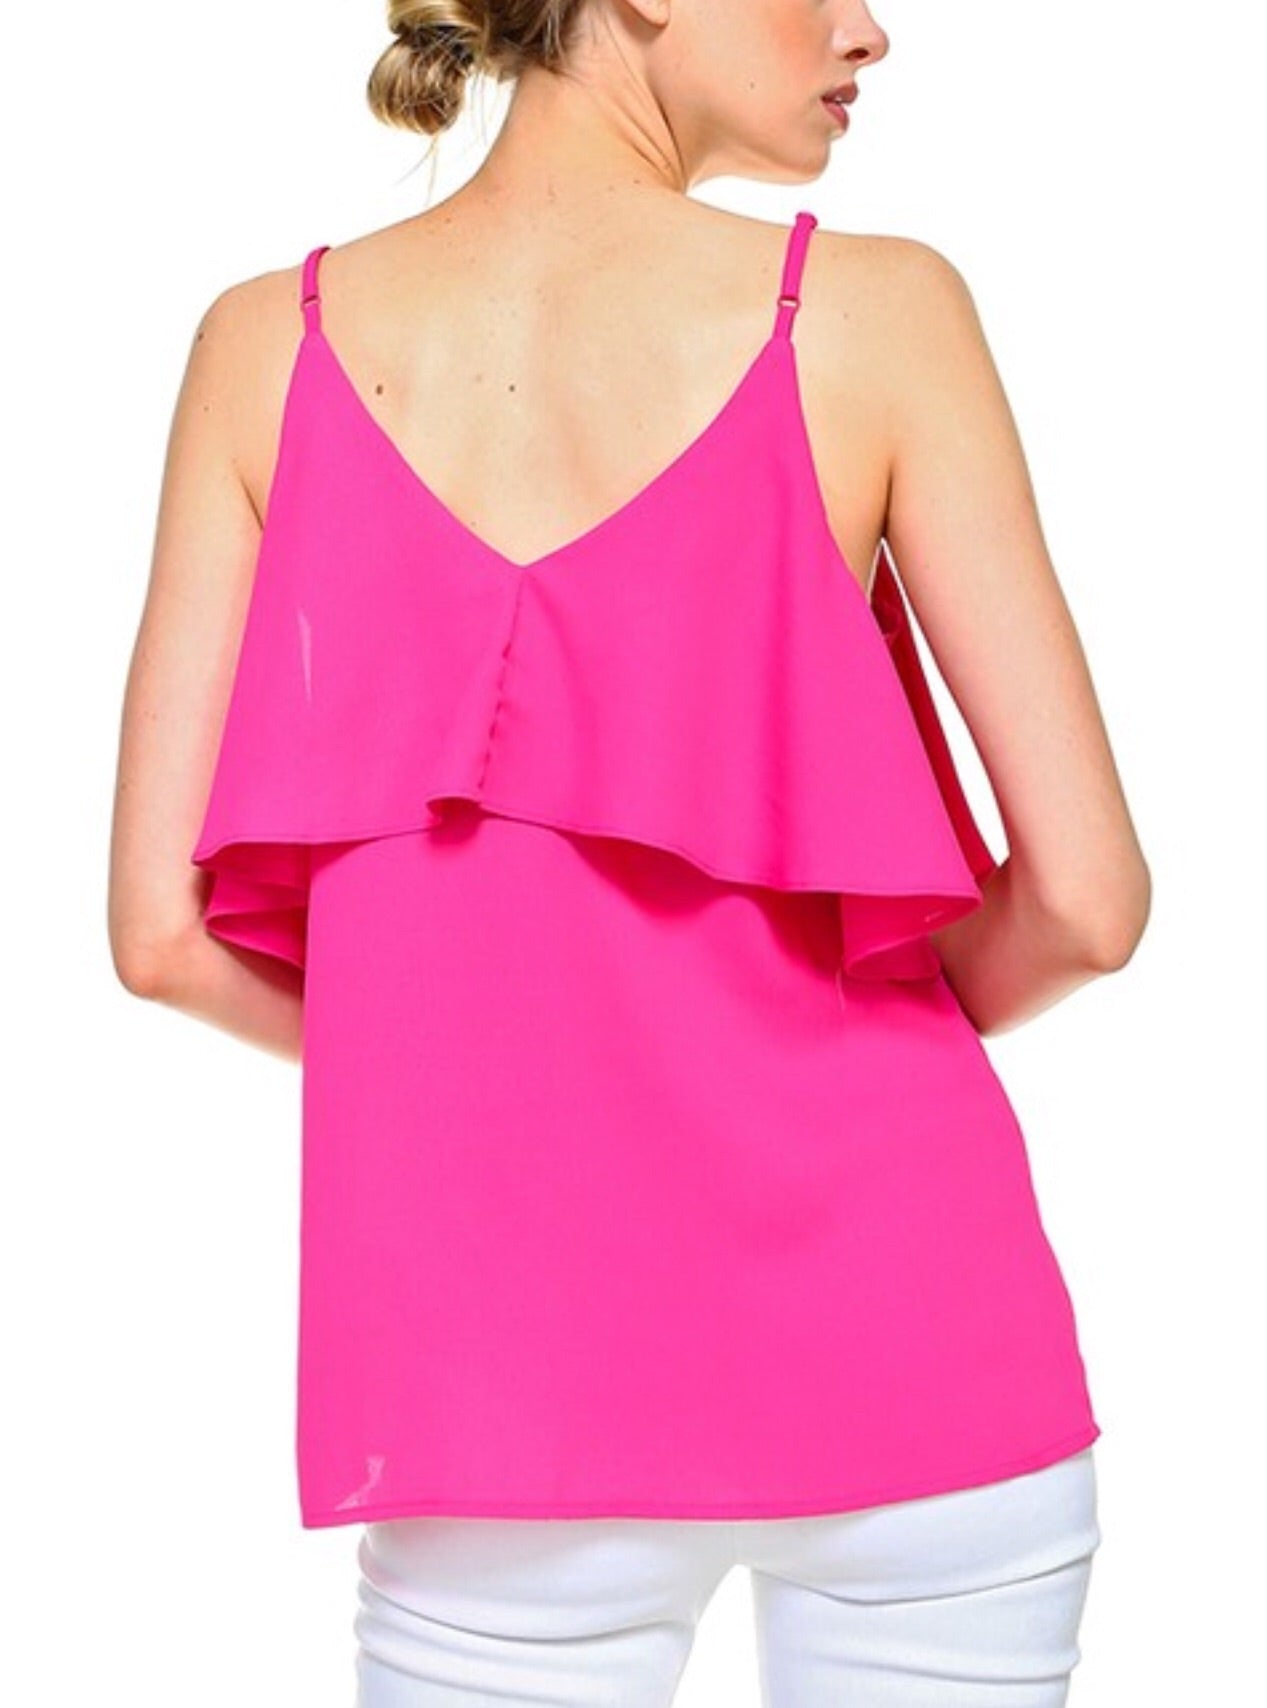 Hot Pink Ruffle Layer Top with Adjustable Straps